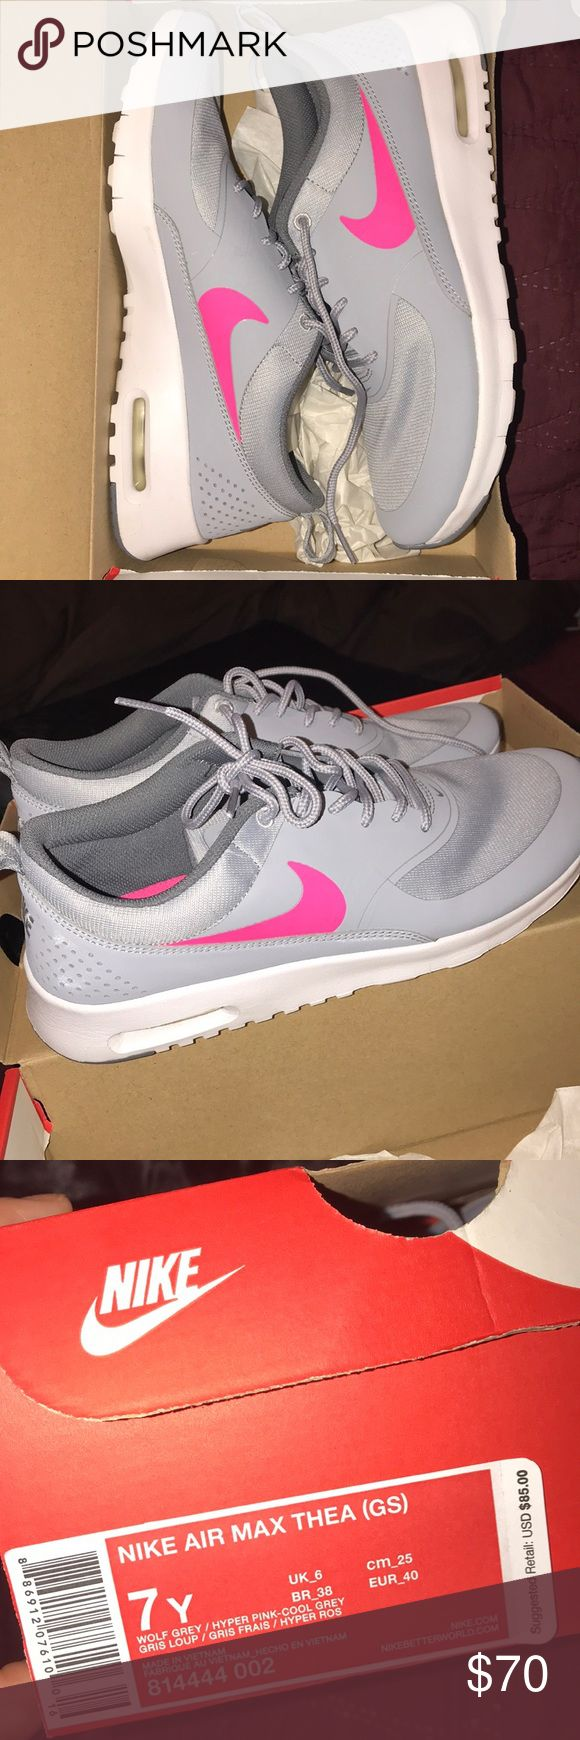 Nike Air Max Thea kids size 7Y Grey nike air max thea with pink swoosh. Size 7Y. Never worn. Nike Shoes Sneakers